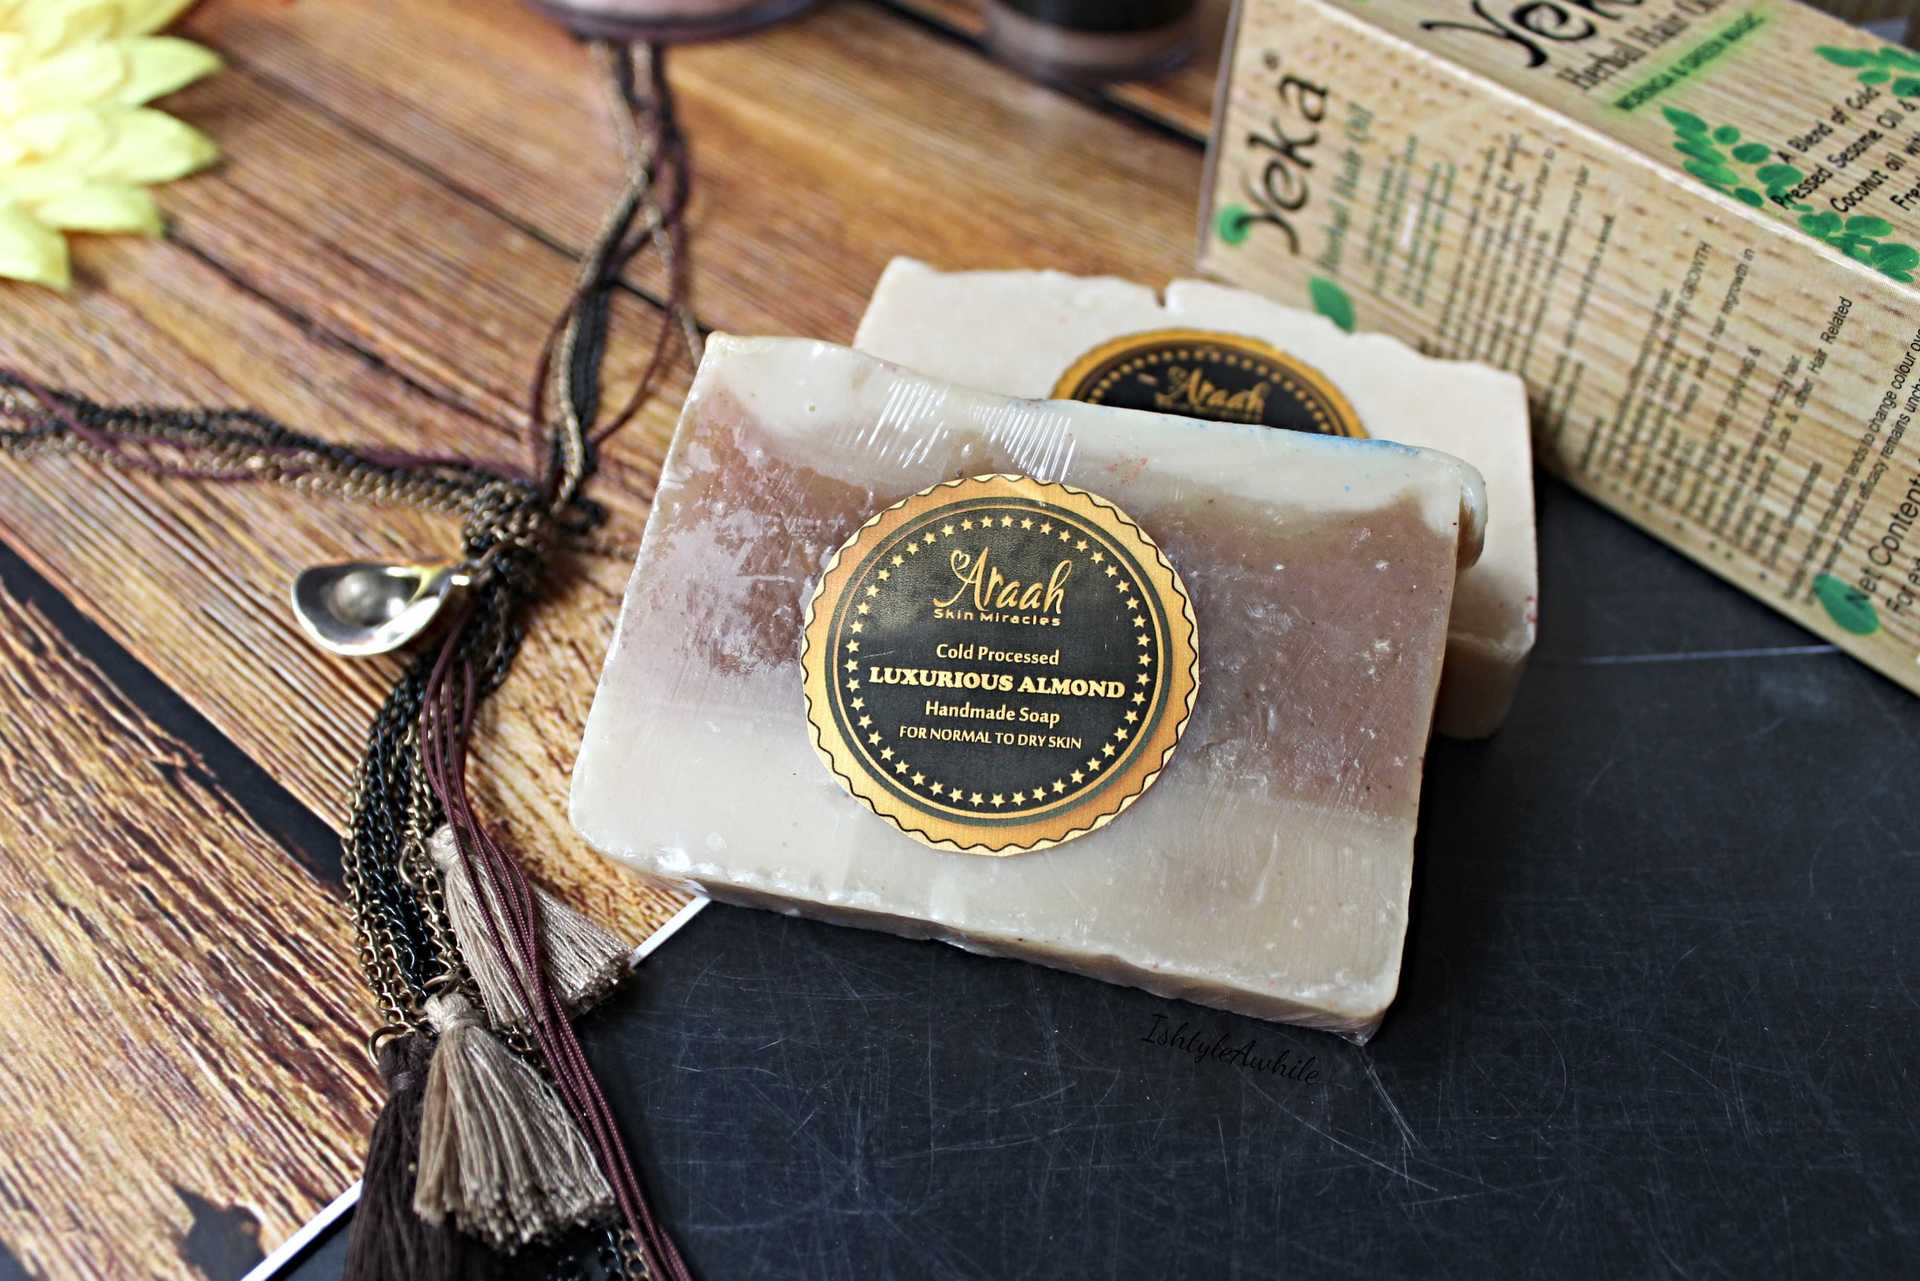 IshtyleAwhile - A Chennai based Indian Fashion Blog - handmade skincare soap chennai